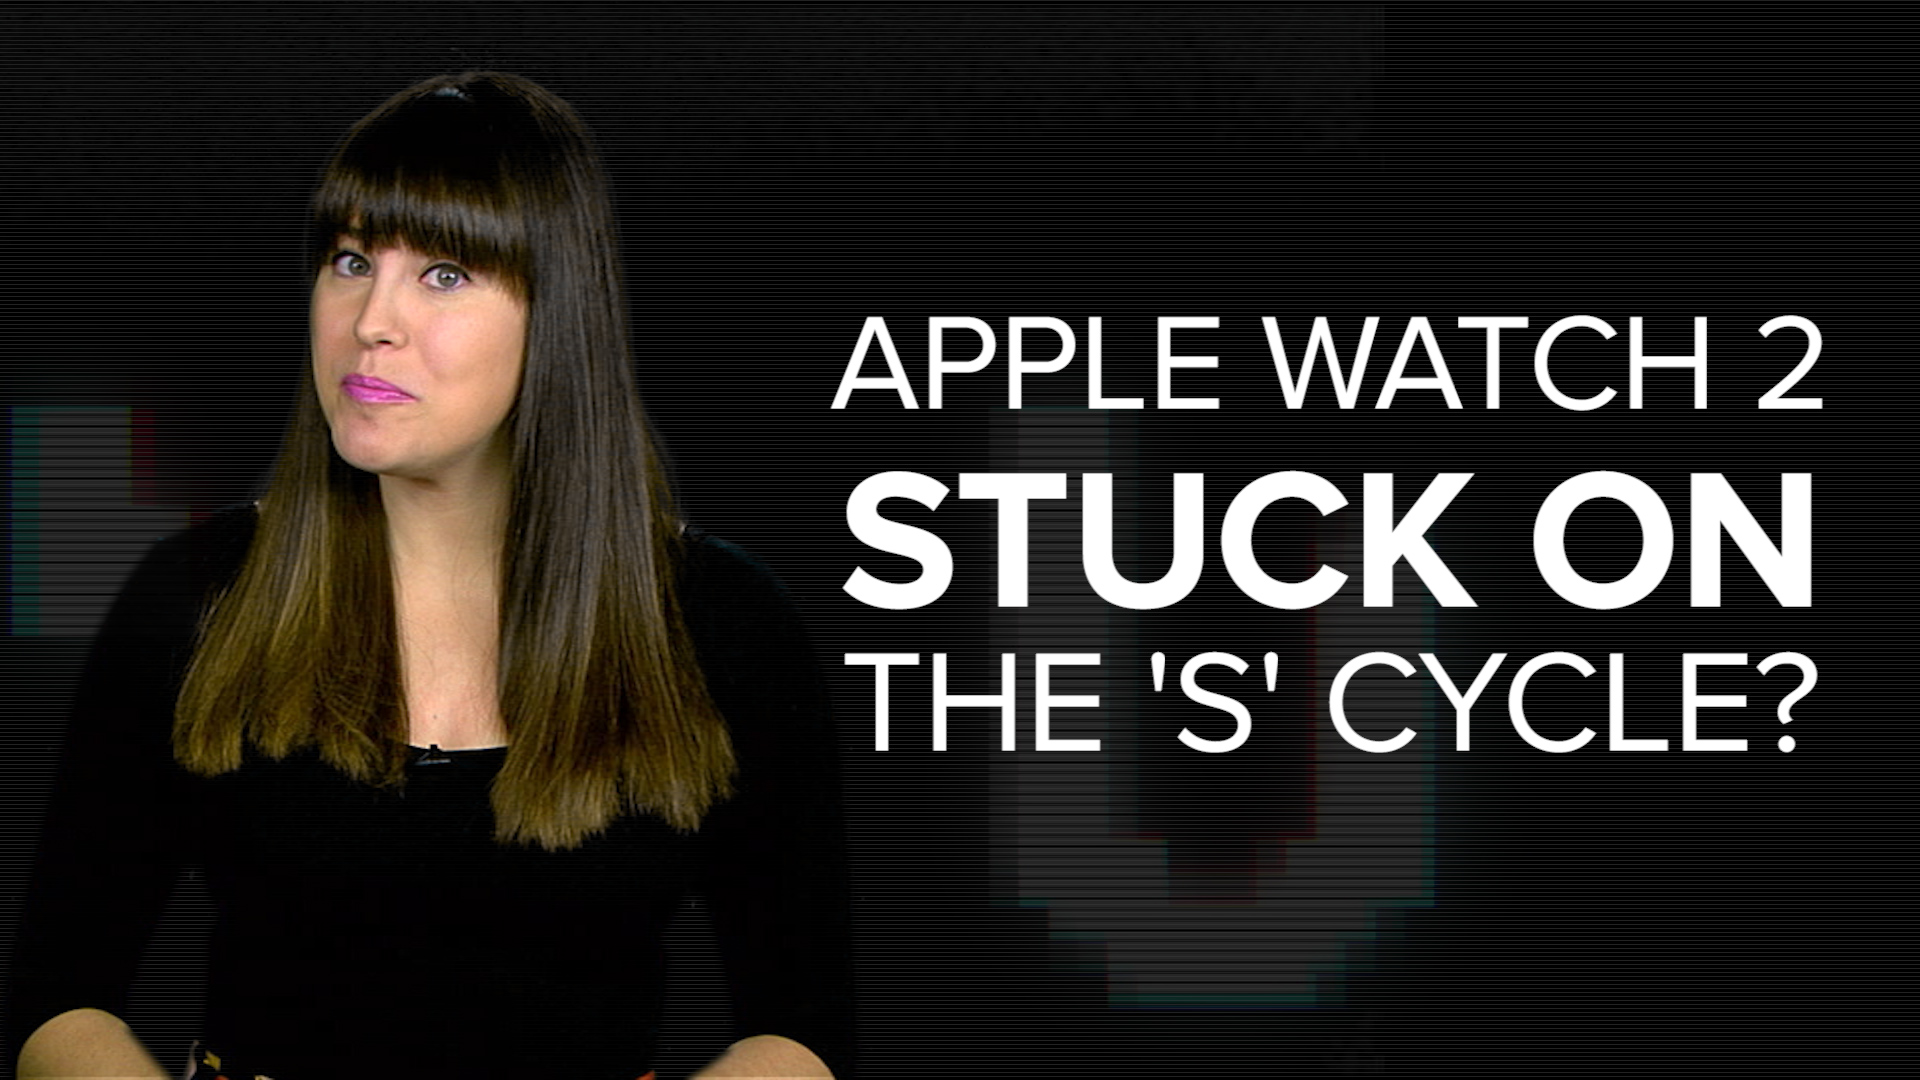 Video: Will the Apple Watch 2 get stuck on the S cycle?